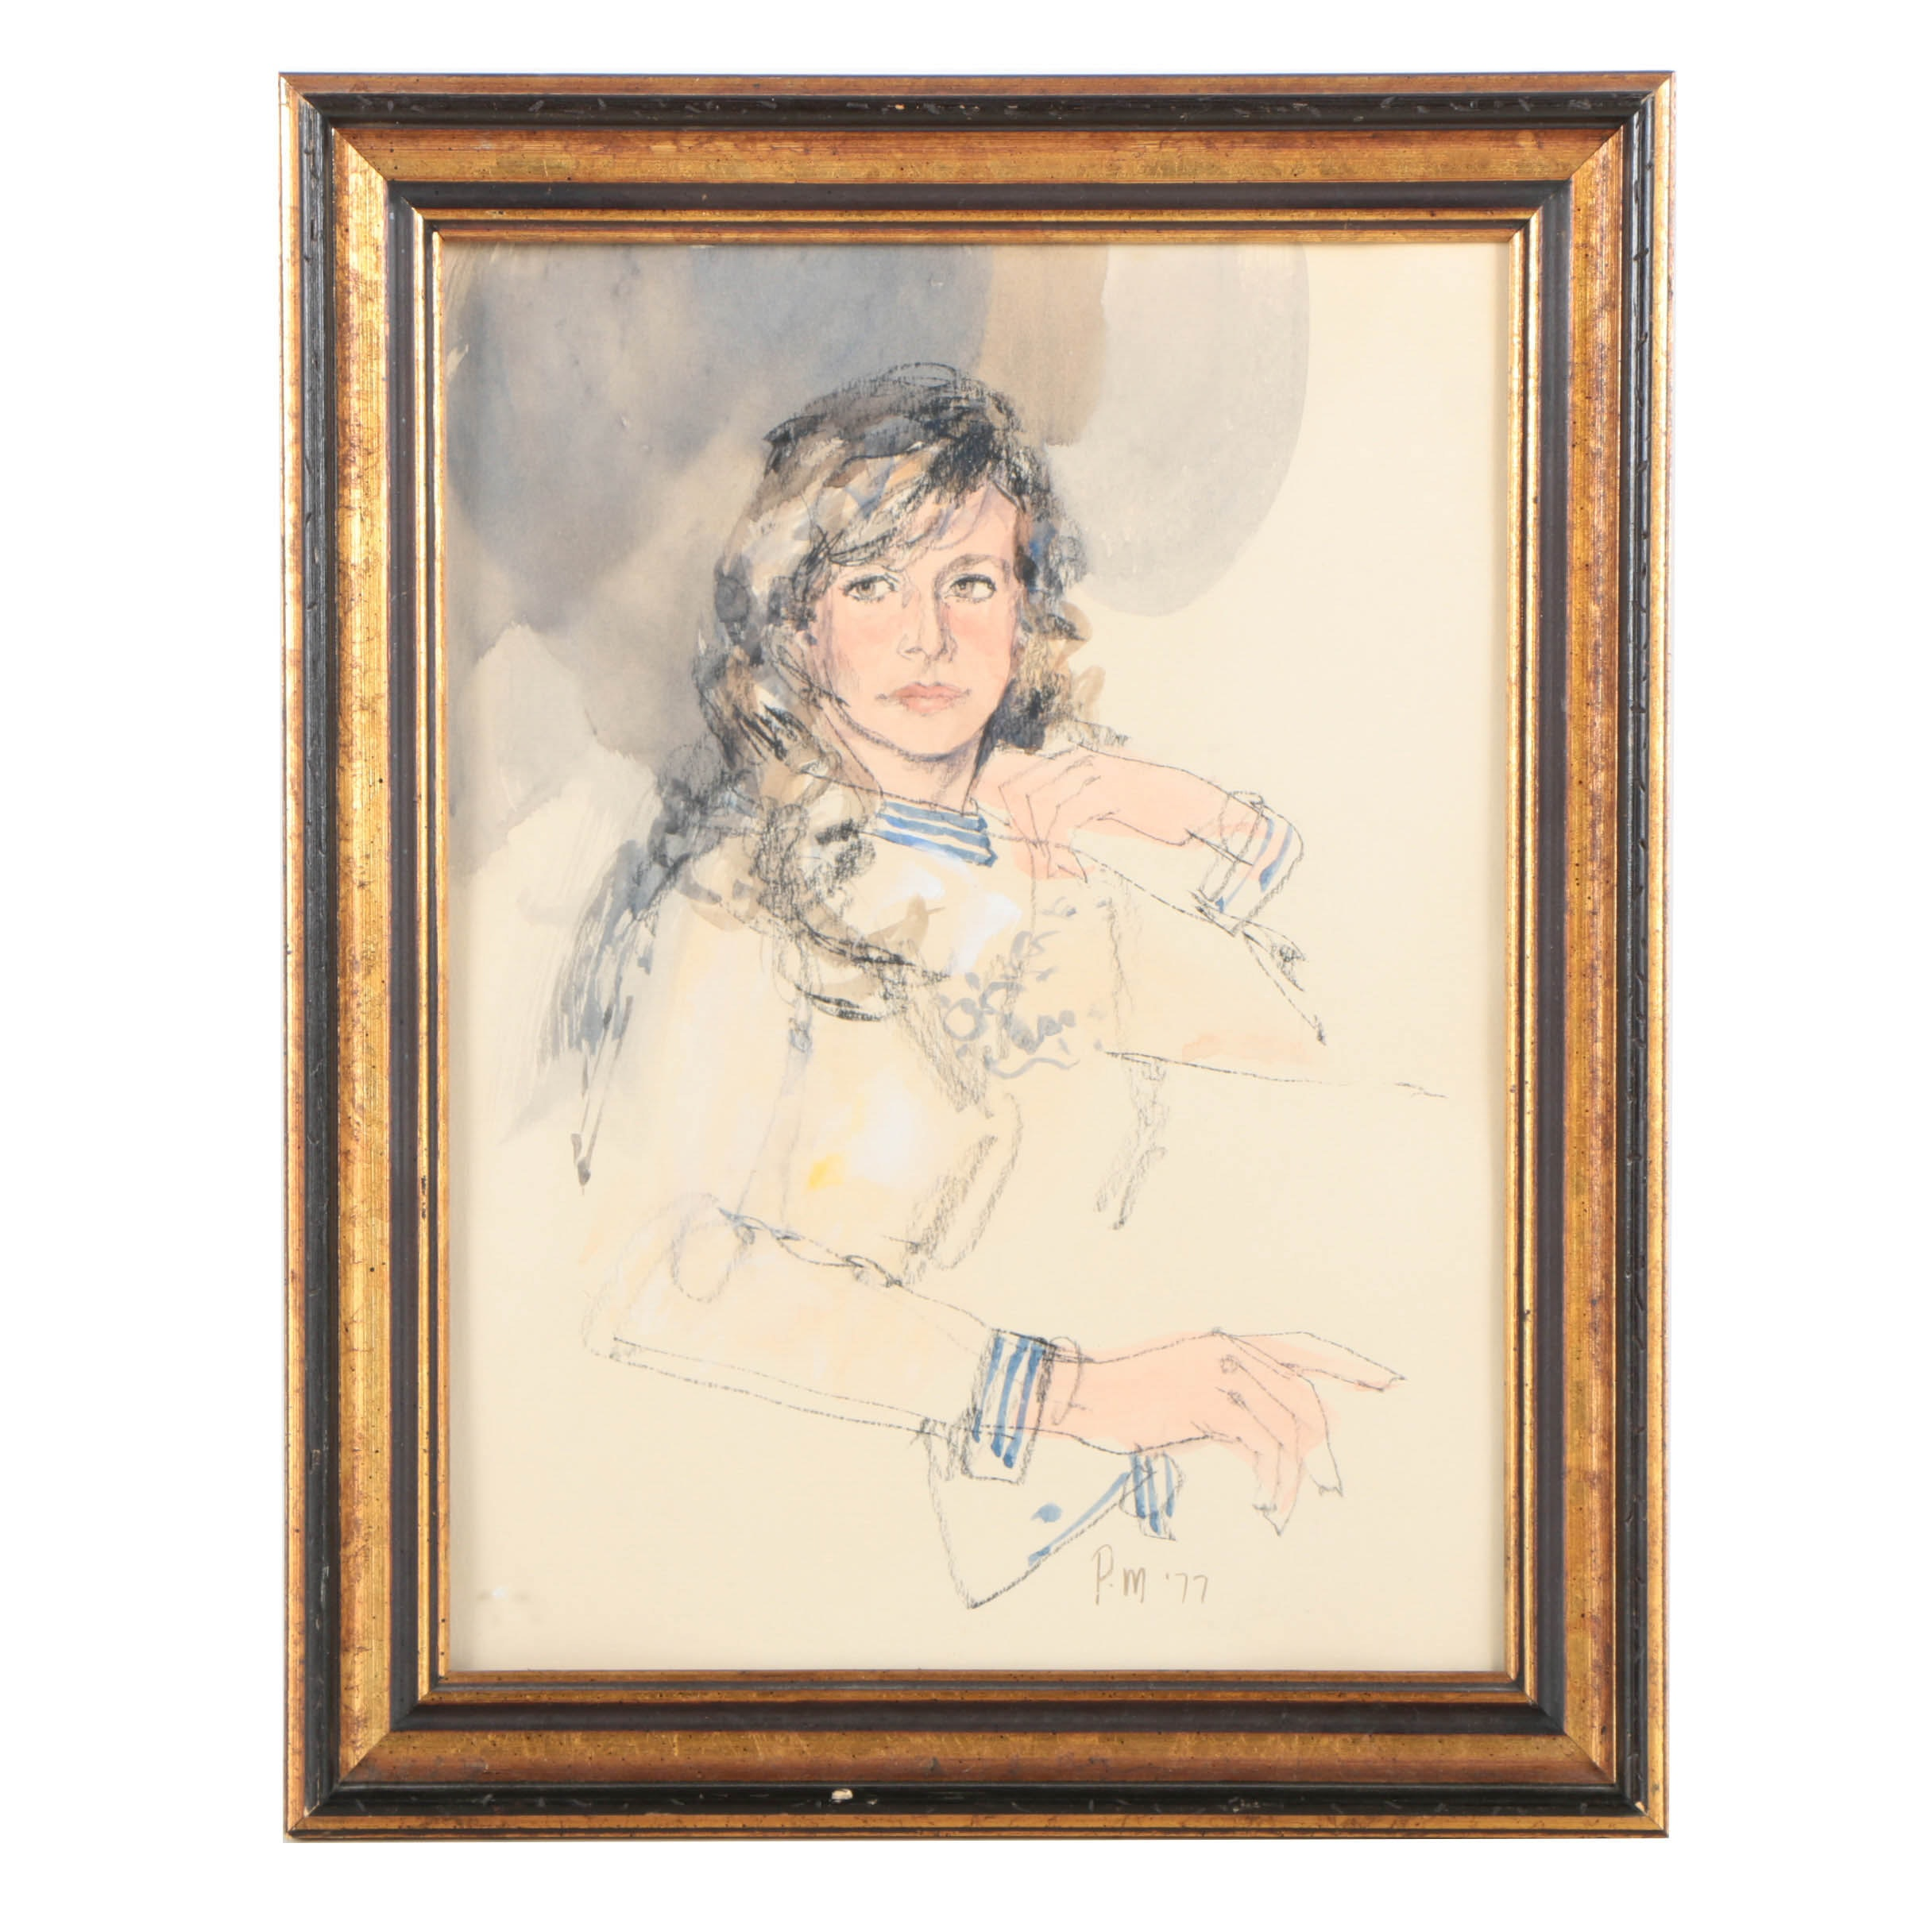 Paul Melia Vintage Portrait of a Woman in Charcoal and Watercolor